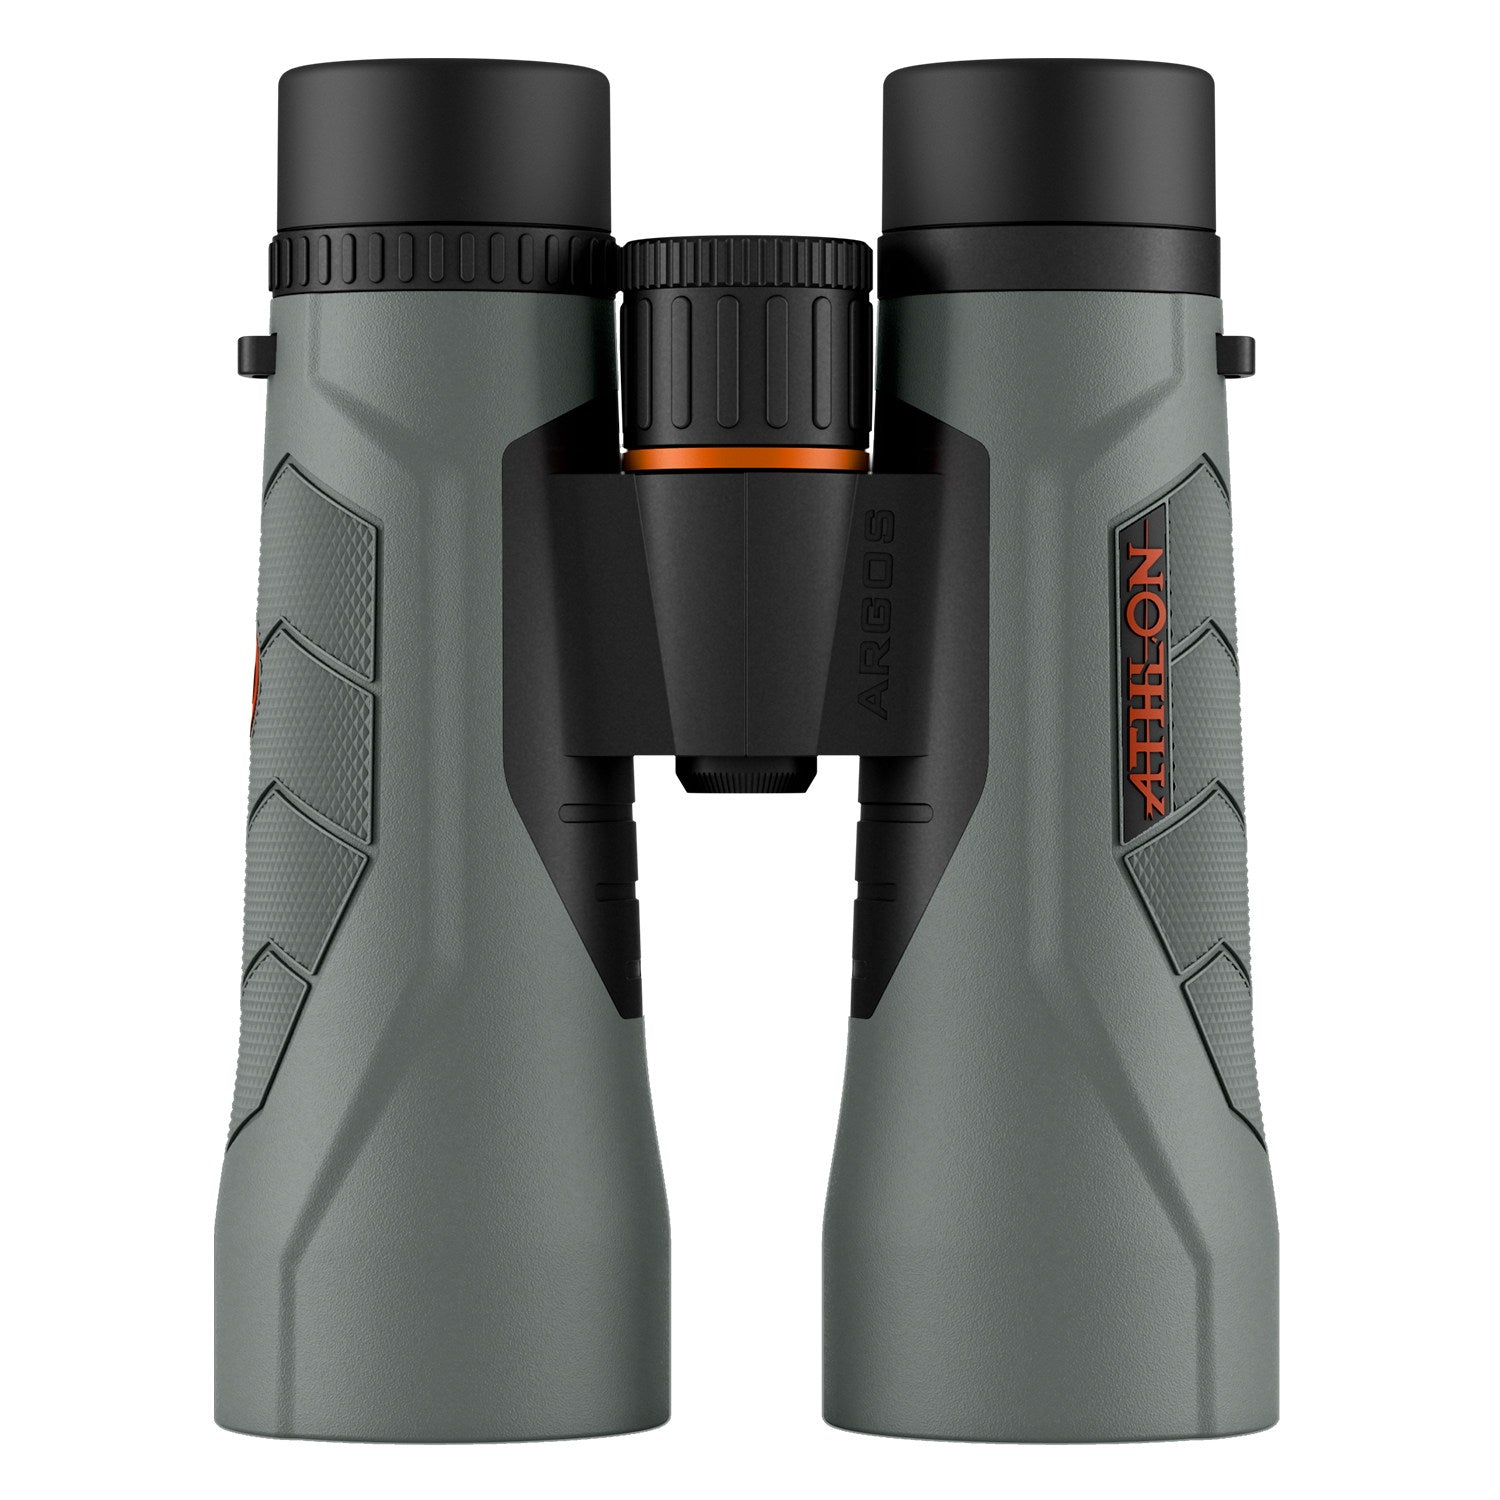 Athlon Optics Argos G2 12x50mm HD Binoculars